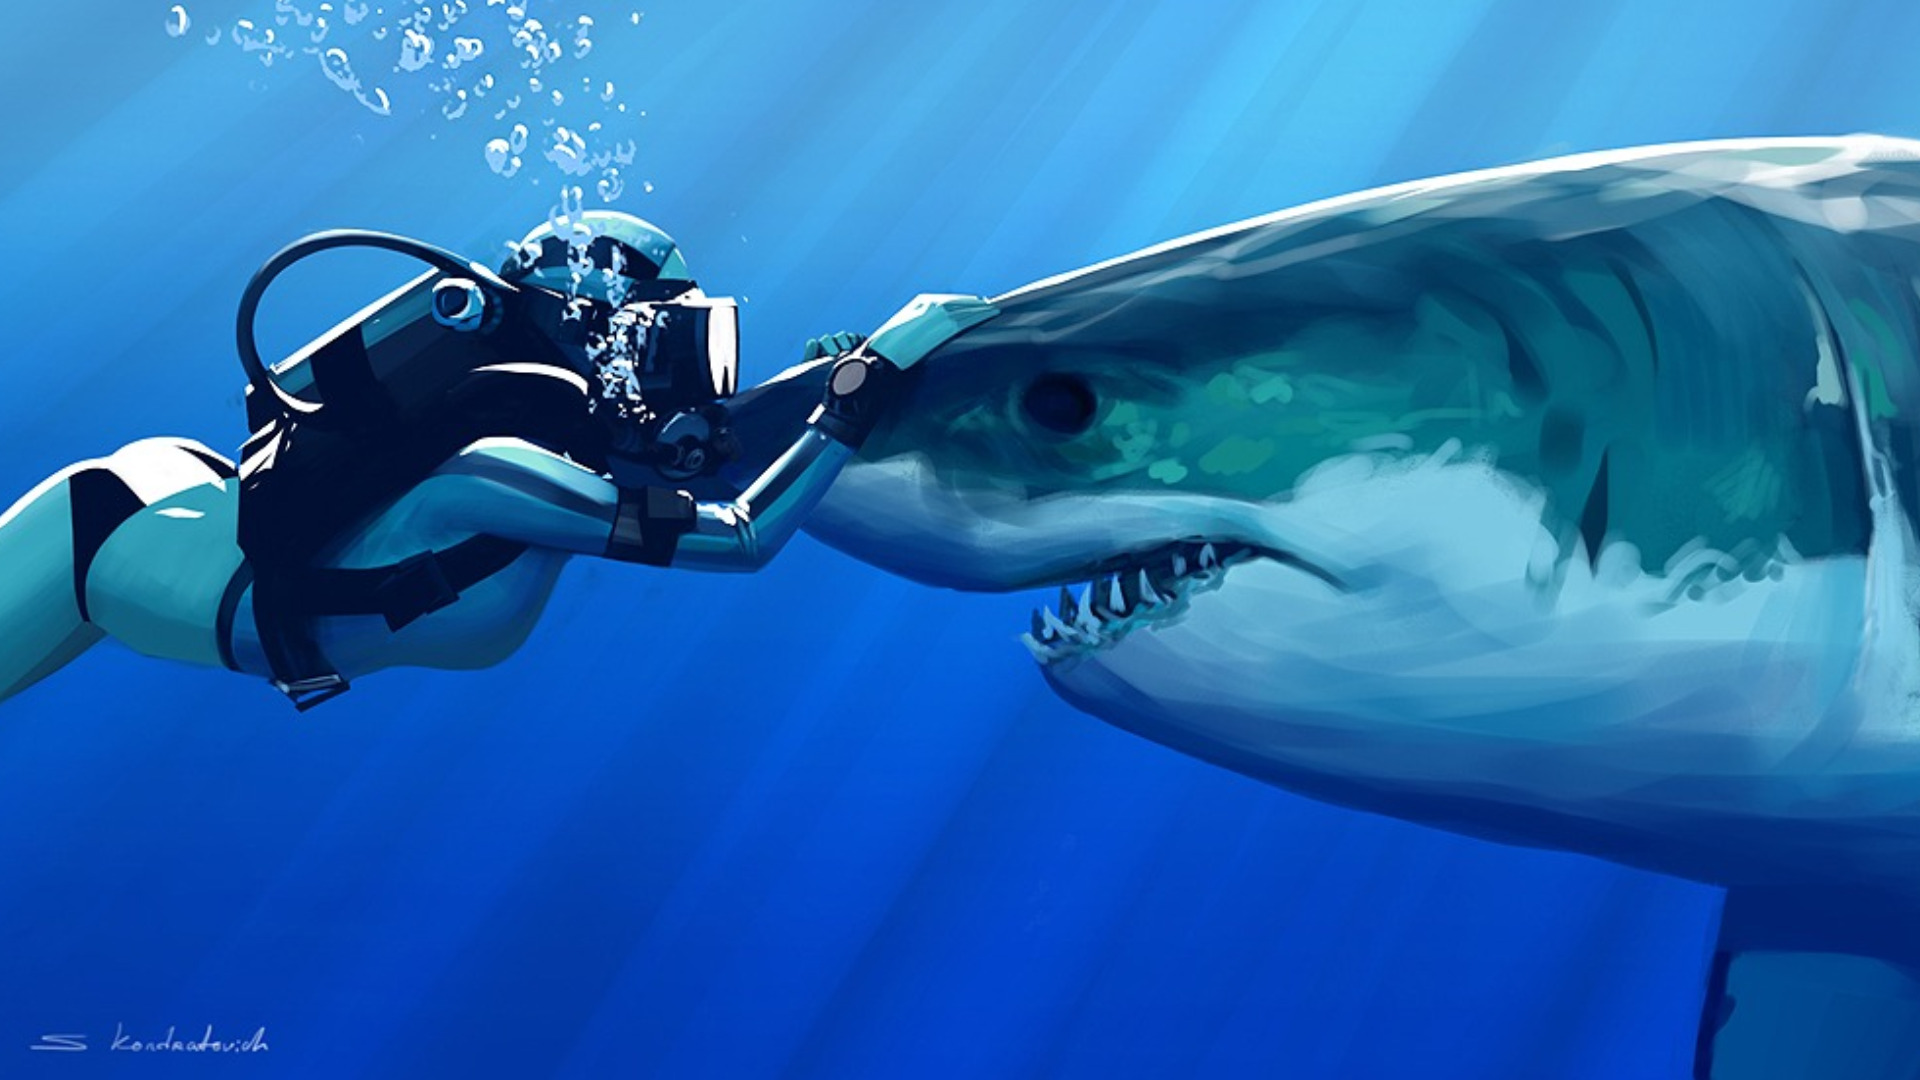 Shark Computer Wallpapers Desktop Backgrounds 1920x1080 ID281761 1920x1080